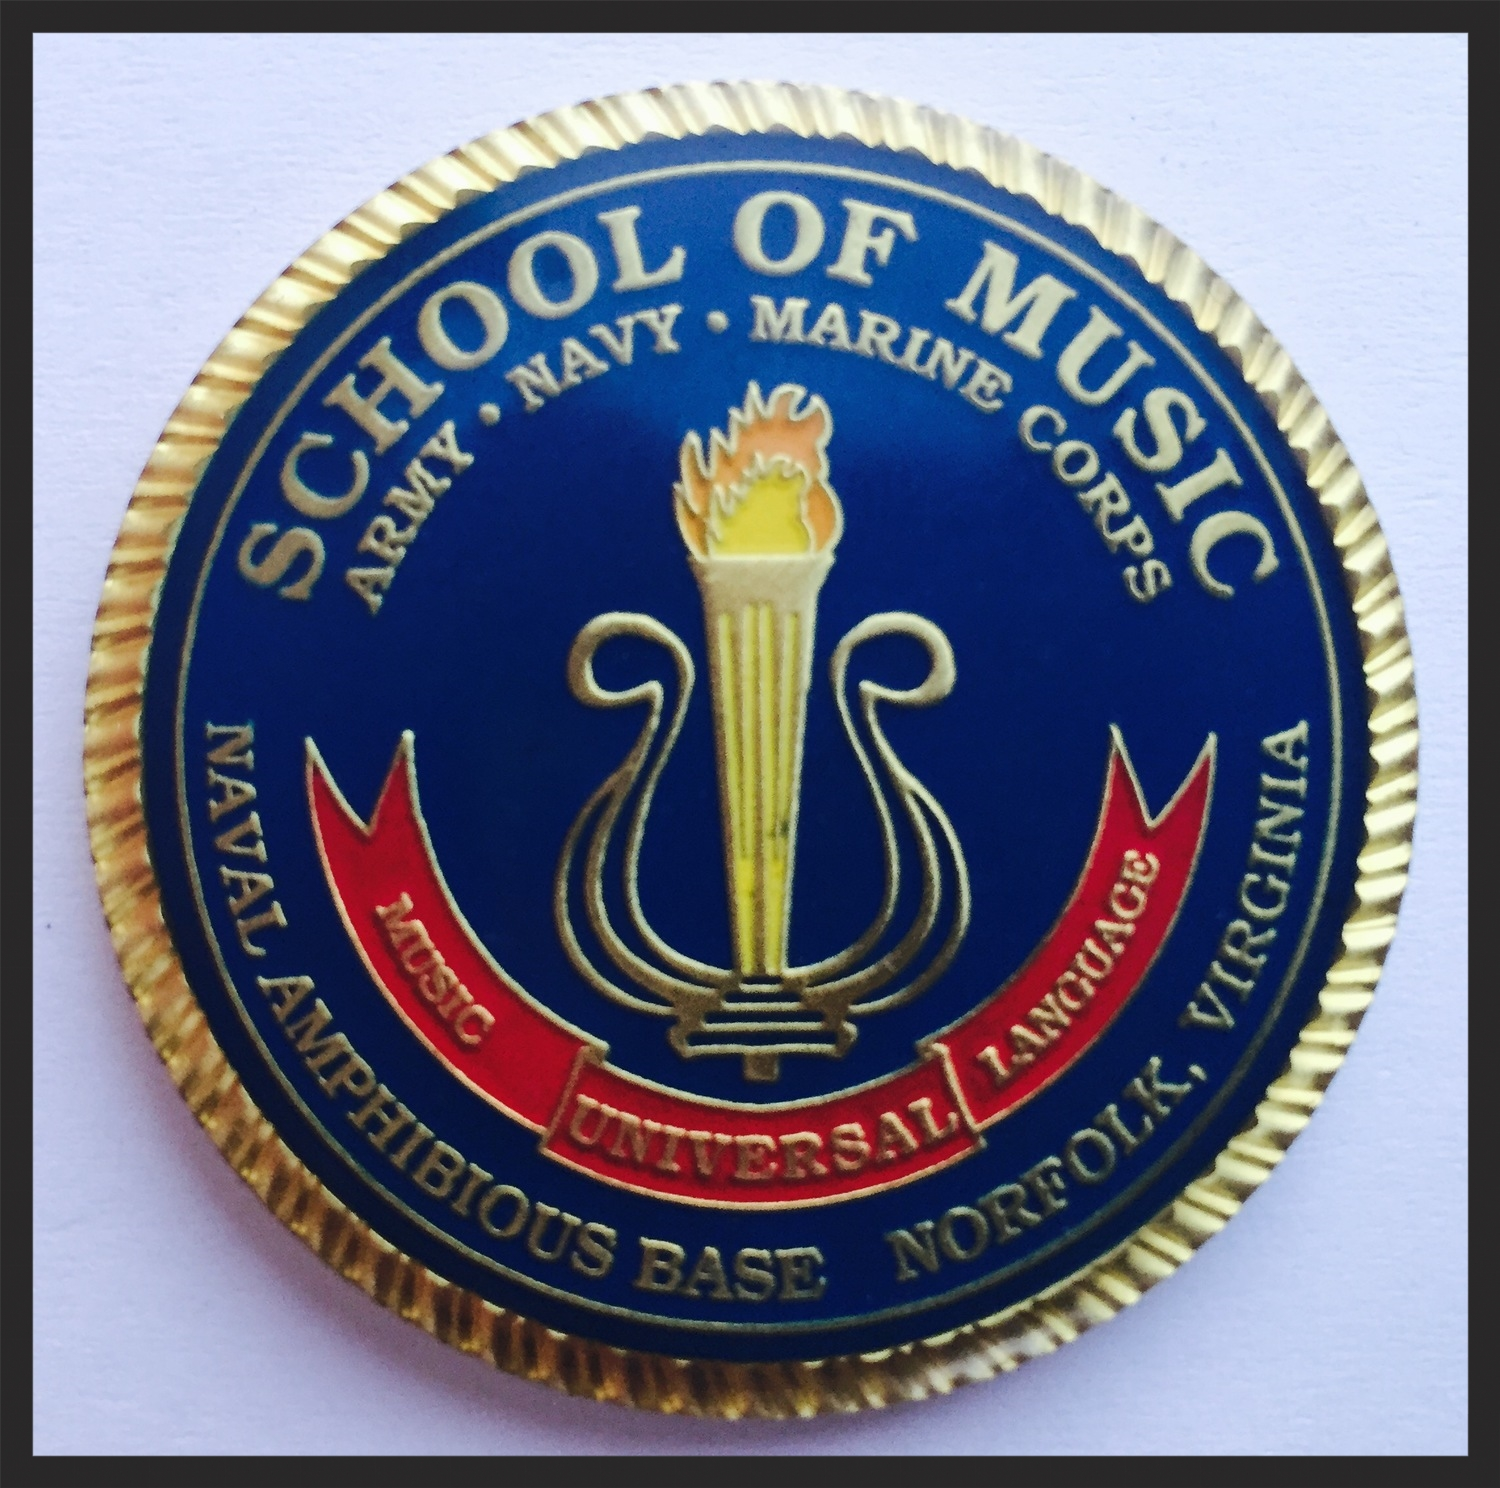 Students who graduate the Navy School of Music with a score of 3.0 or higher get the honor of a name plaque on the walls of the school, as well as a command coin.